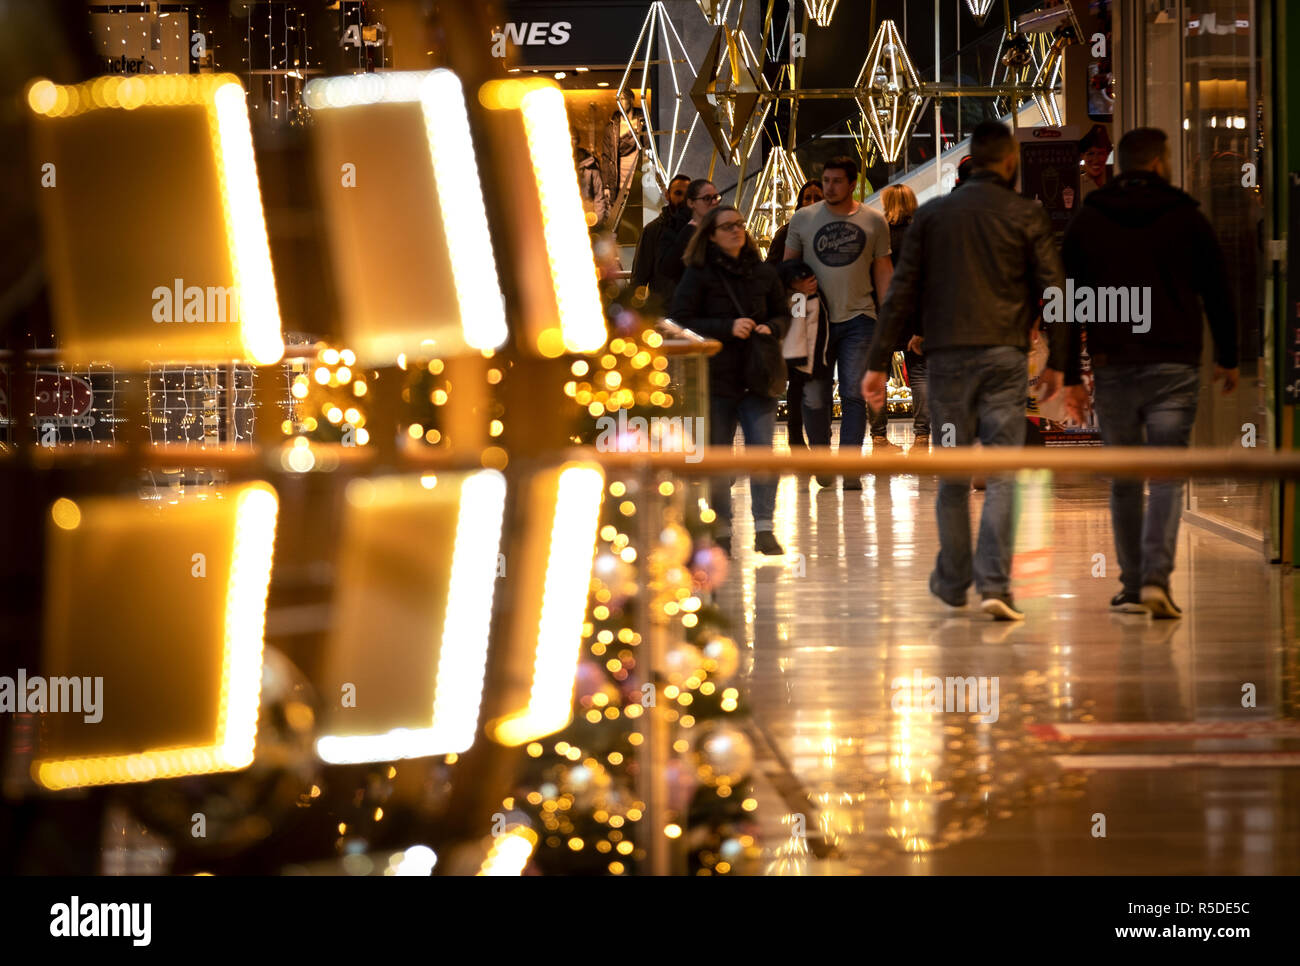 Hannover, Germany. 01 December, , 2018. People rush through a shopping gallery decorated for Christmas. The retail trade in Lower Saxony is hoping for full stores and customers who like to buy already at the beginning of the Advent season. Credit: Peter Steffen/dpa/Alamy Live News - Stock Image